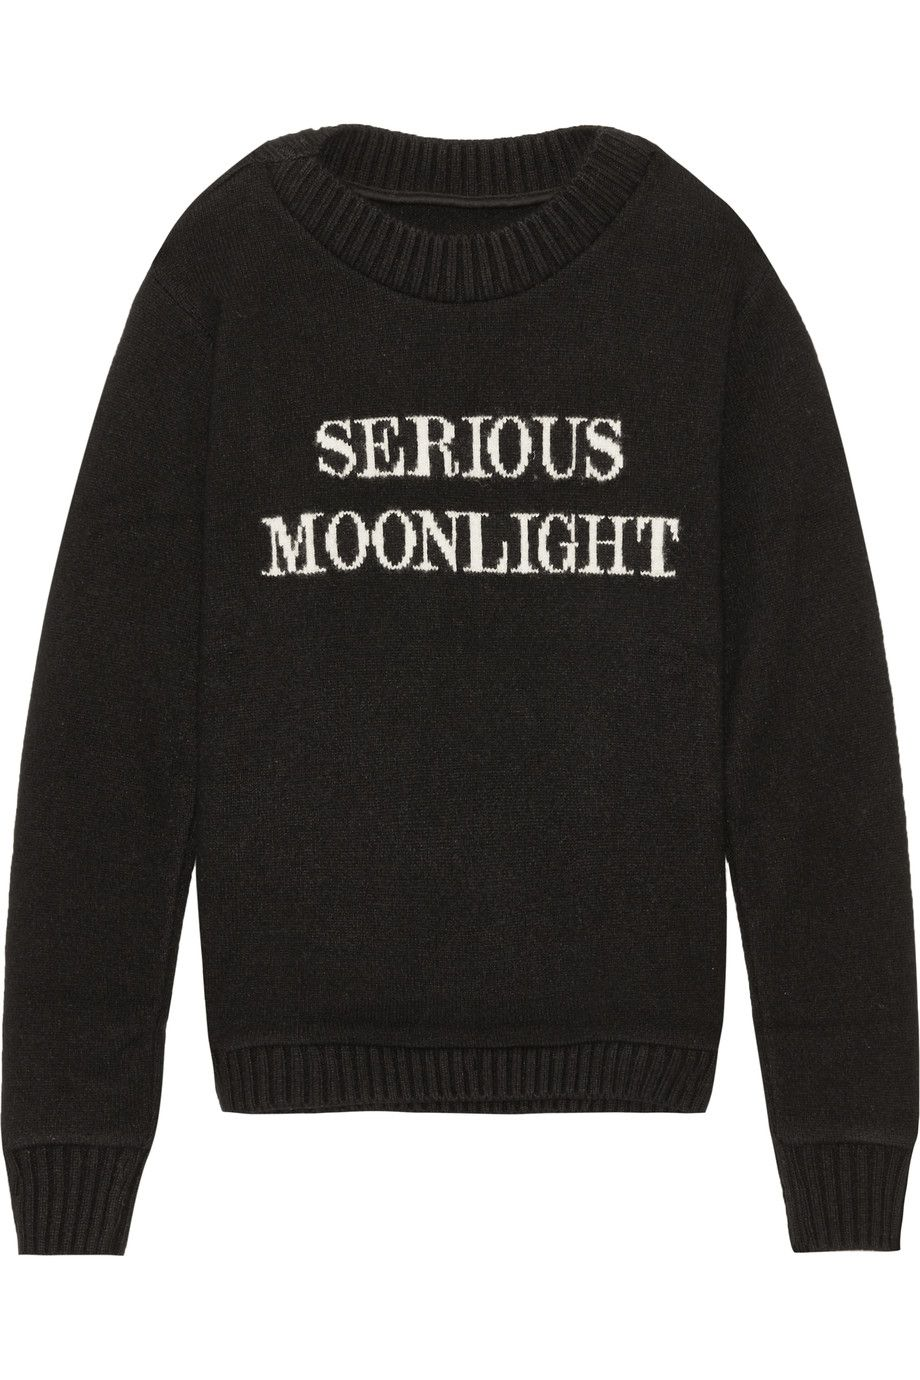 THE ELDER STATESMAN Serious Moonlight intarsia cashmere sweater€1,880